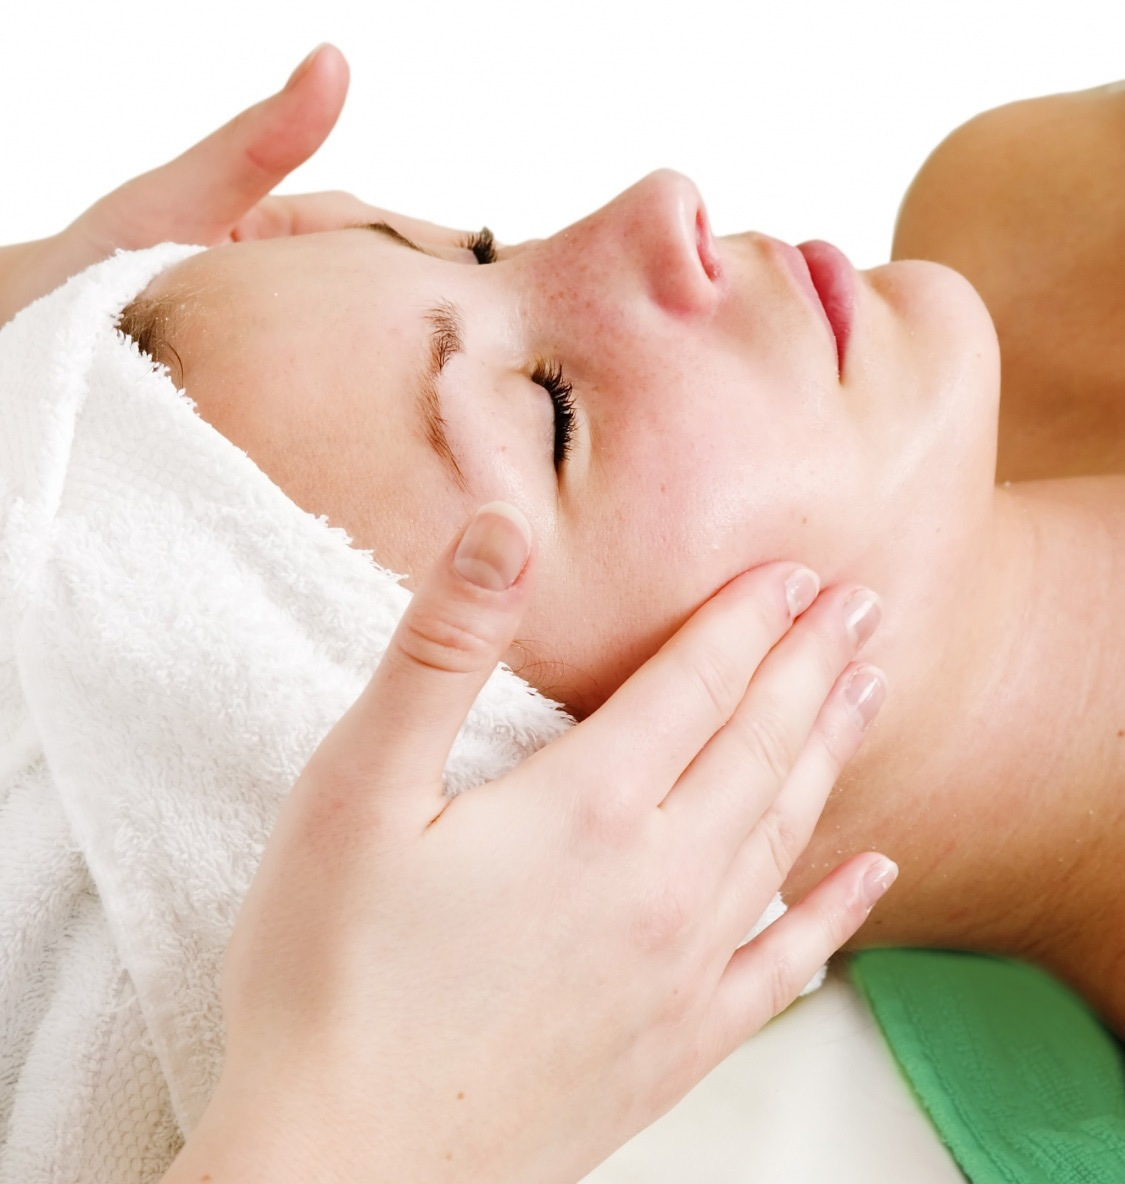 Information on facial massage techniques